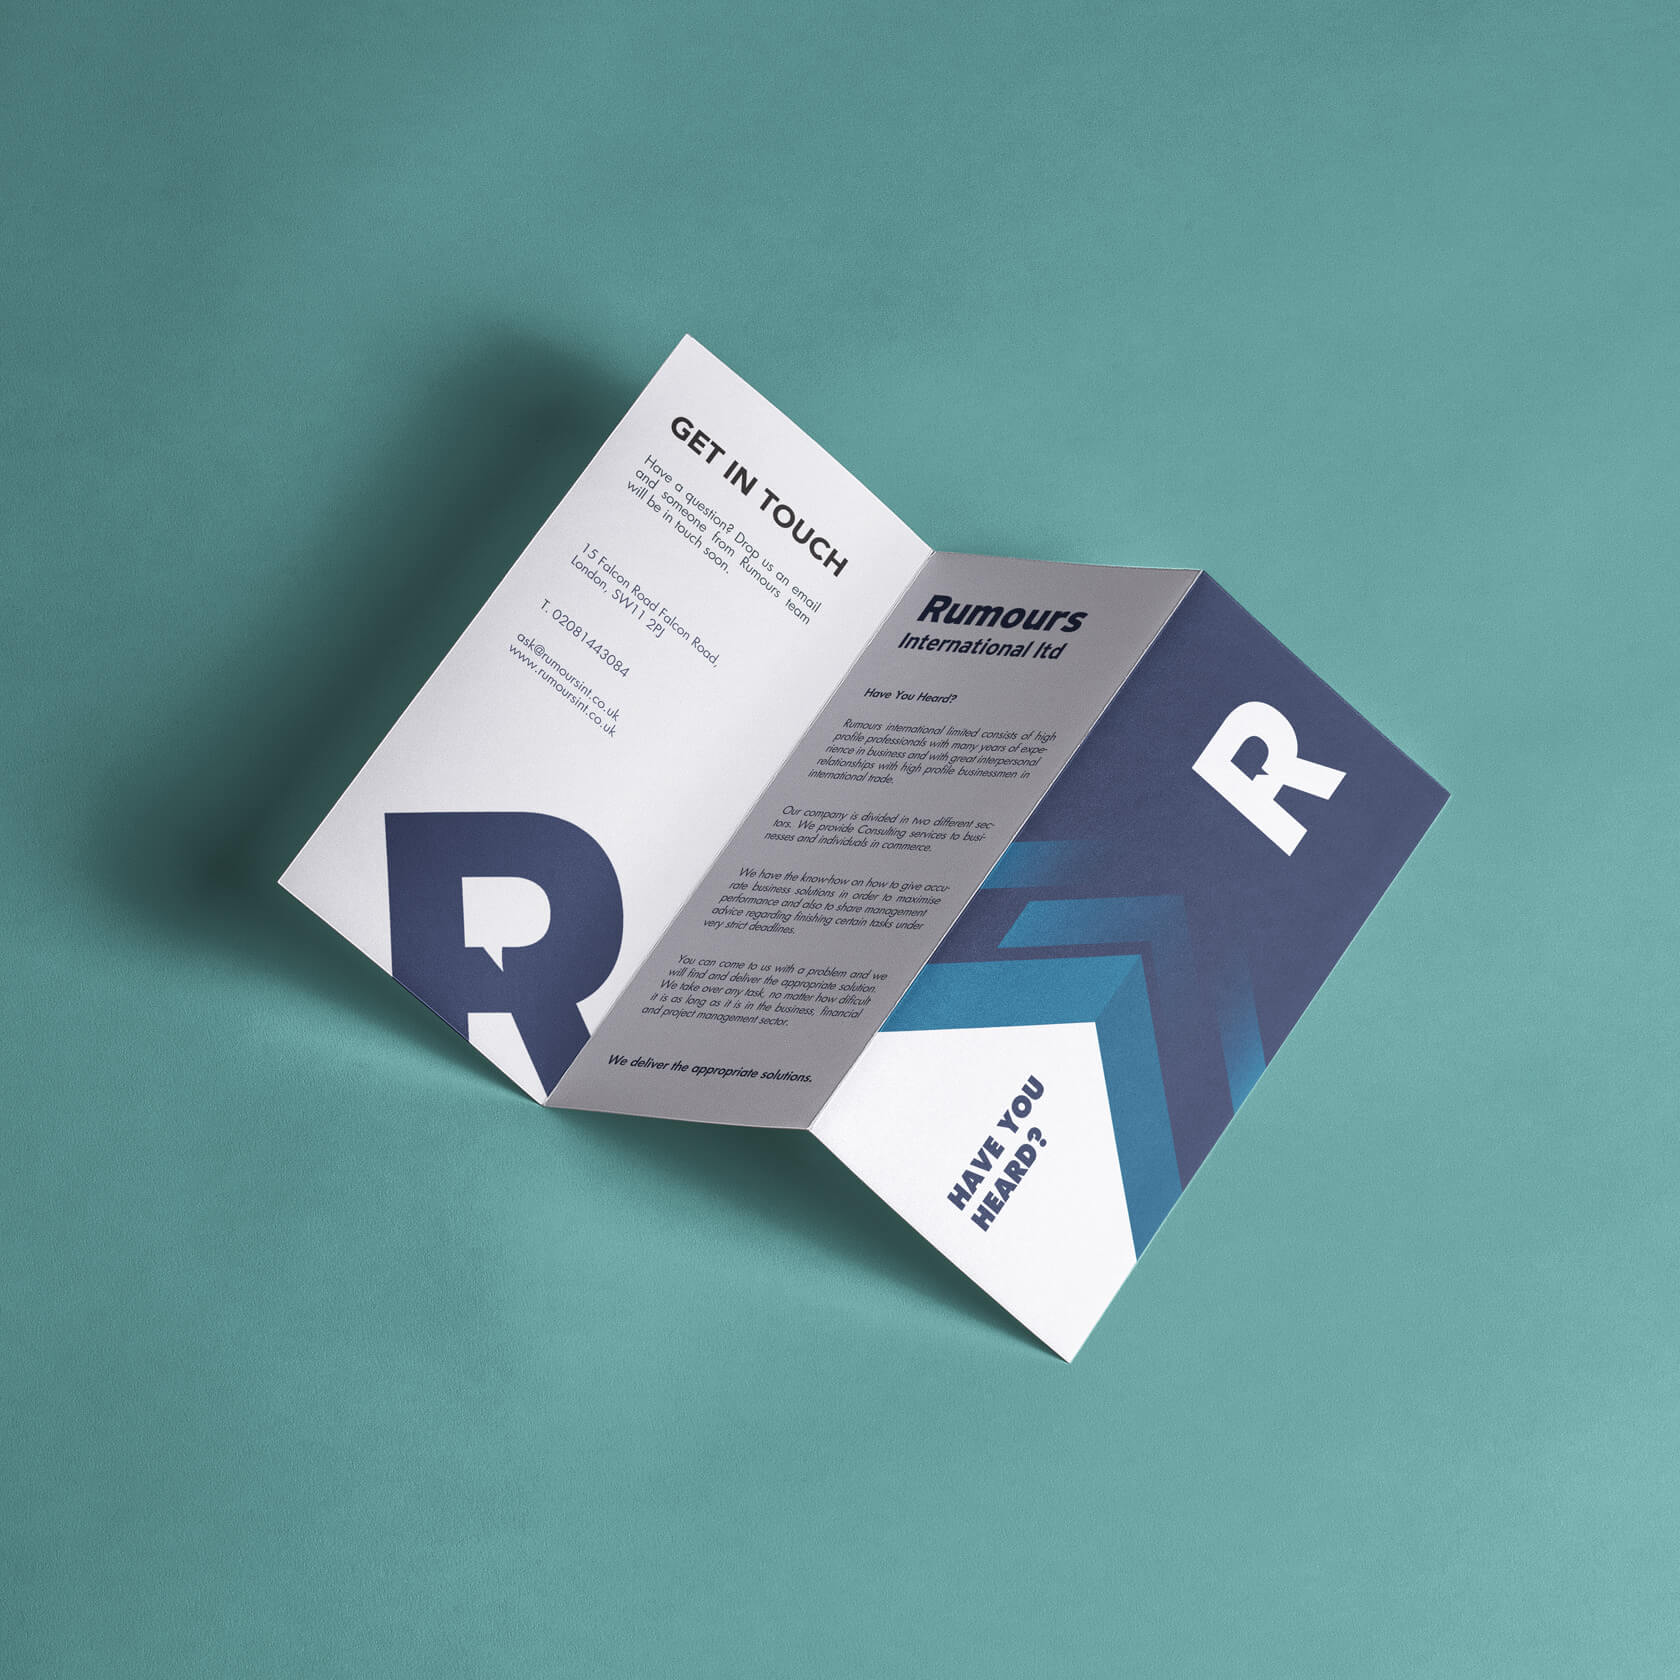 Rumours International consulting brochure